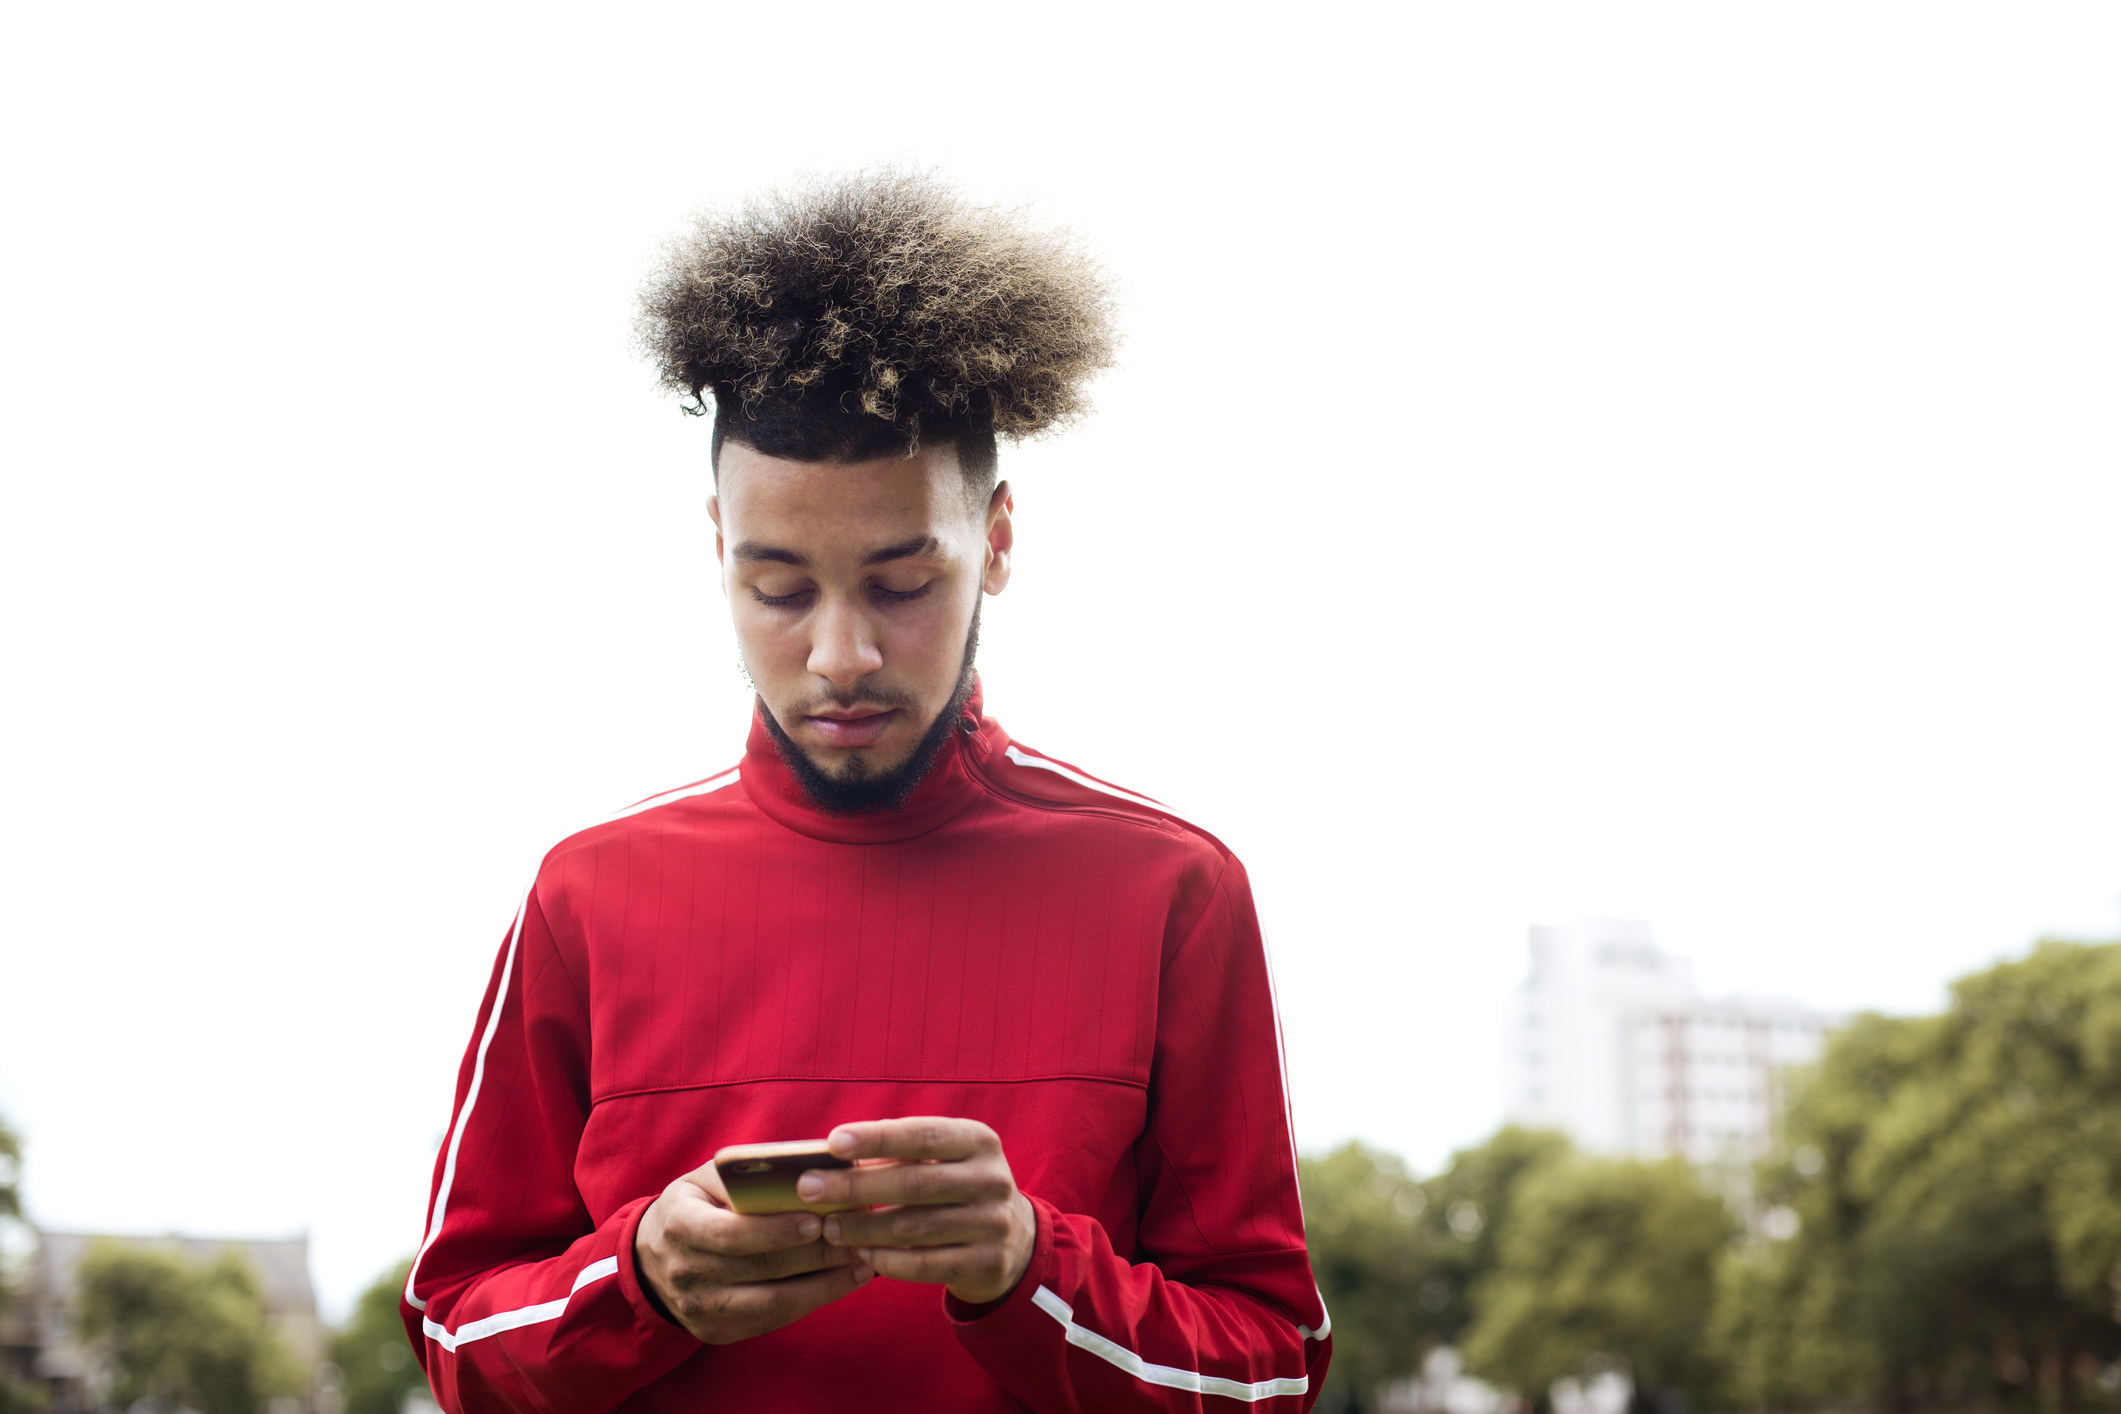 A young man texting